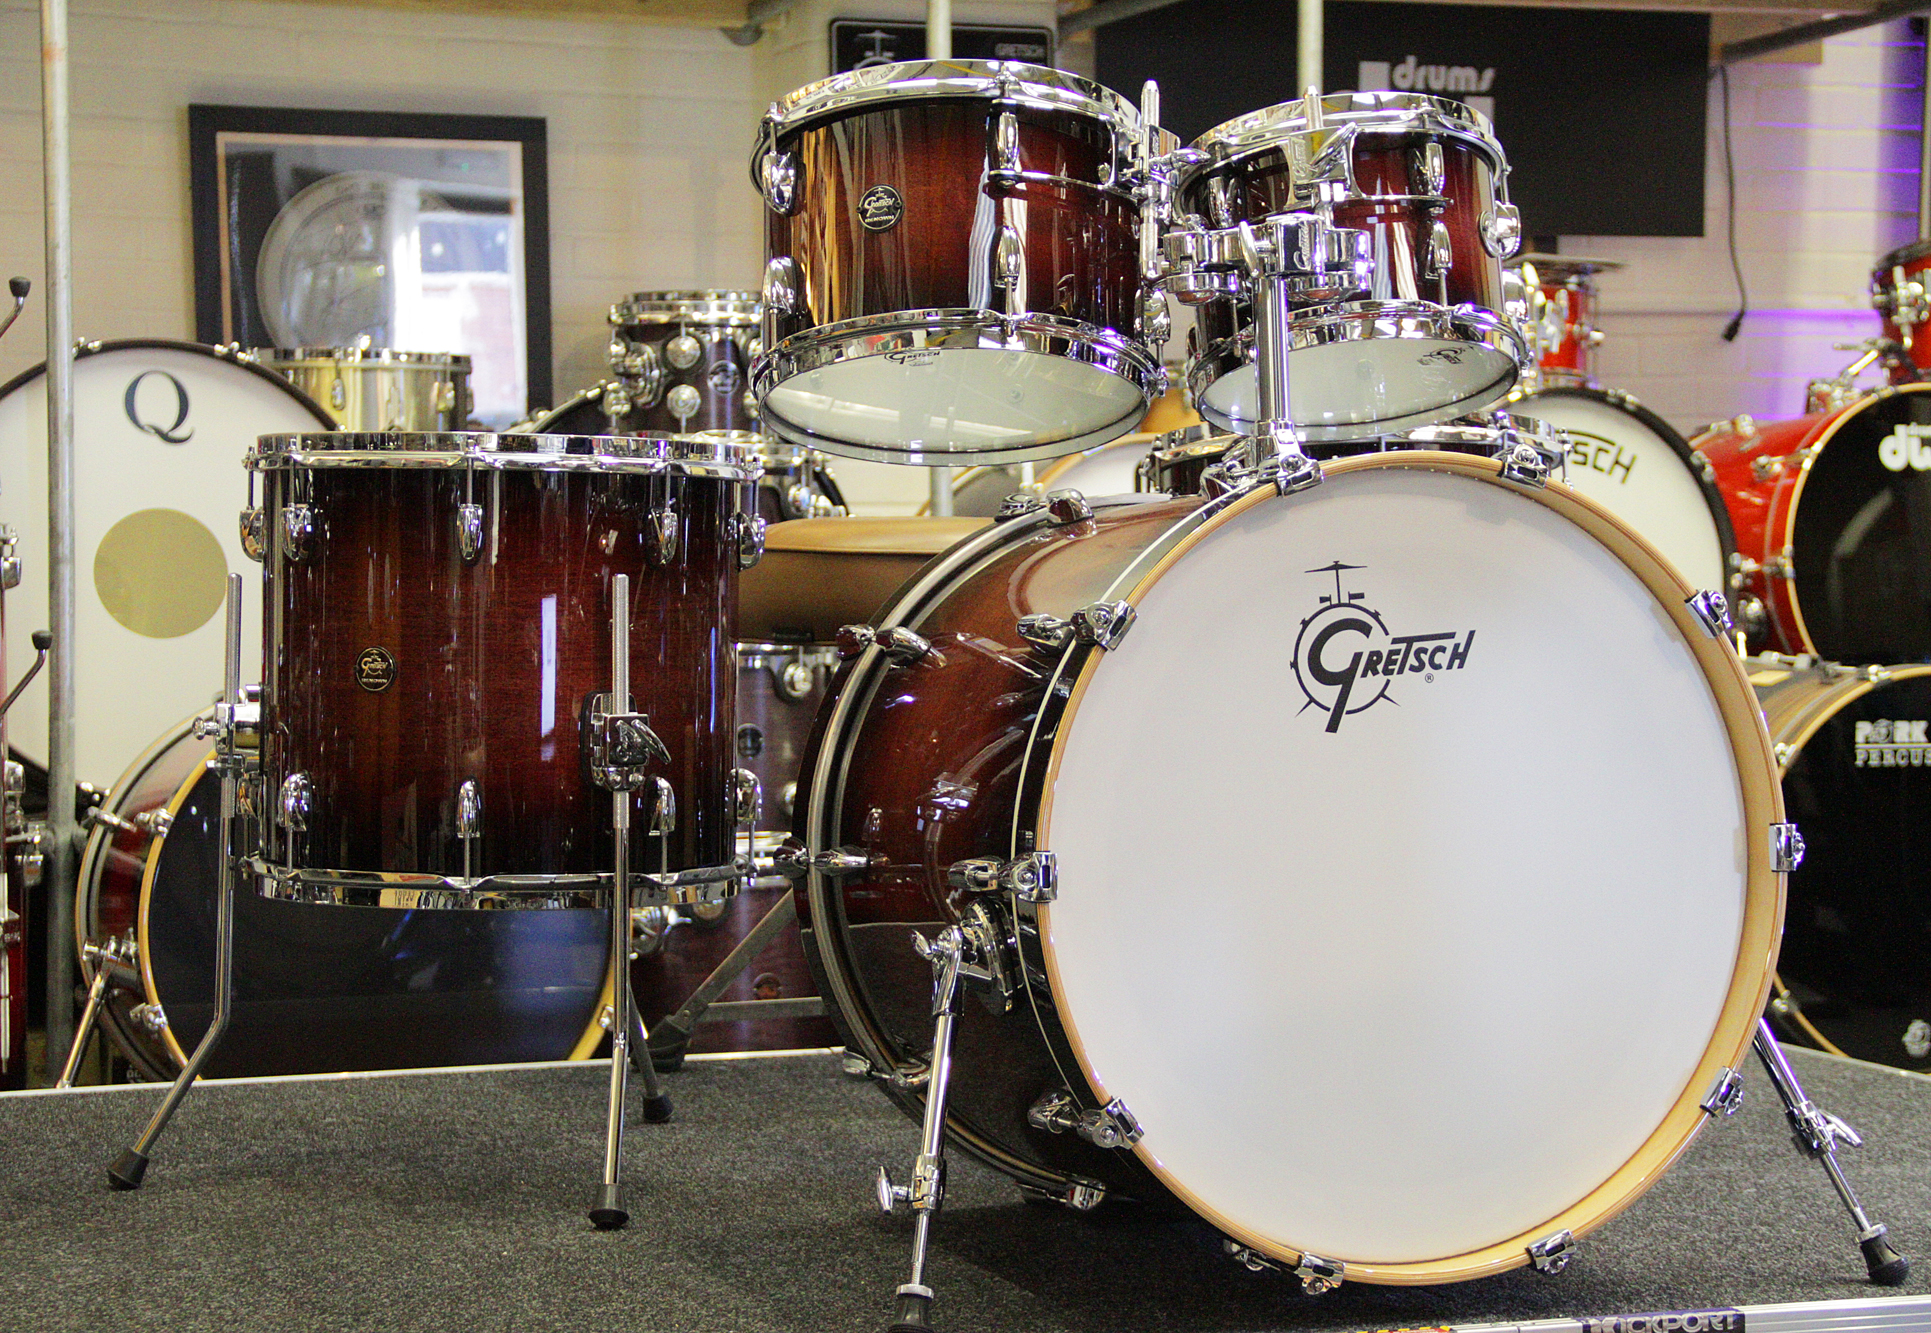 acoustic drum kits gretsch renown maple 4 piece shell pack cherry burst. Black Bedroom Furniture Sets. Home Design Ideas